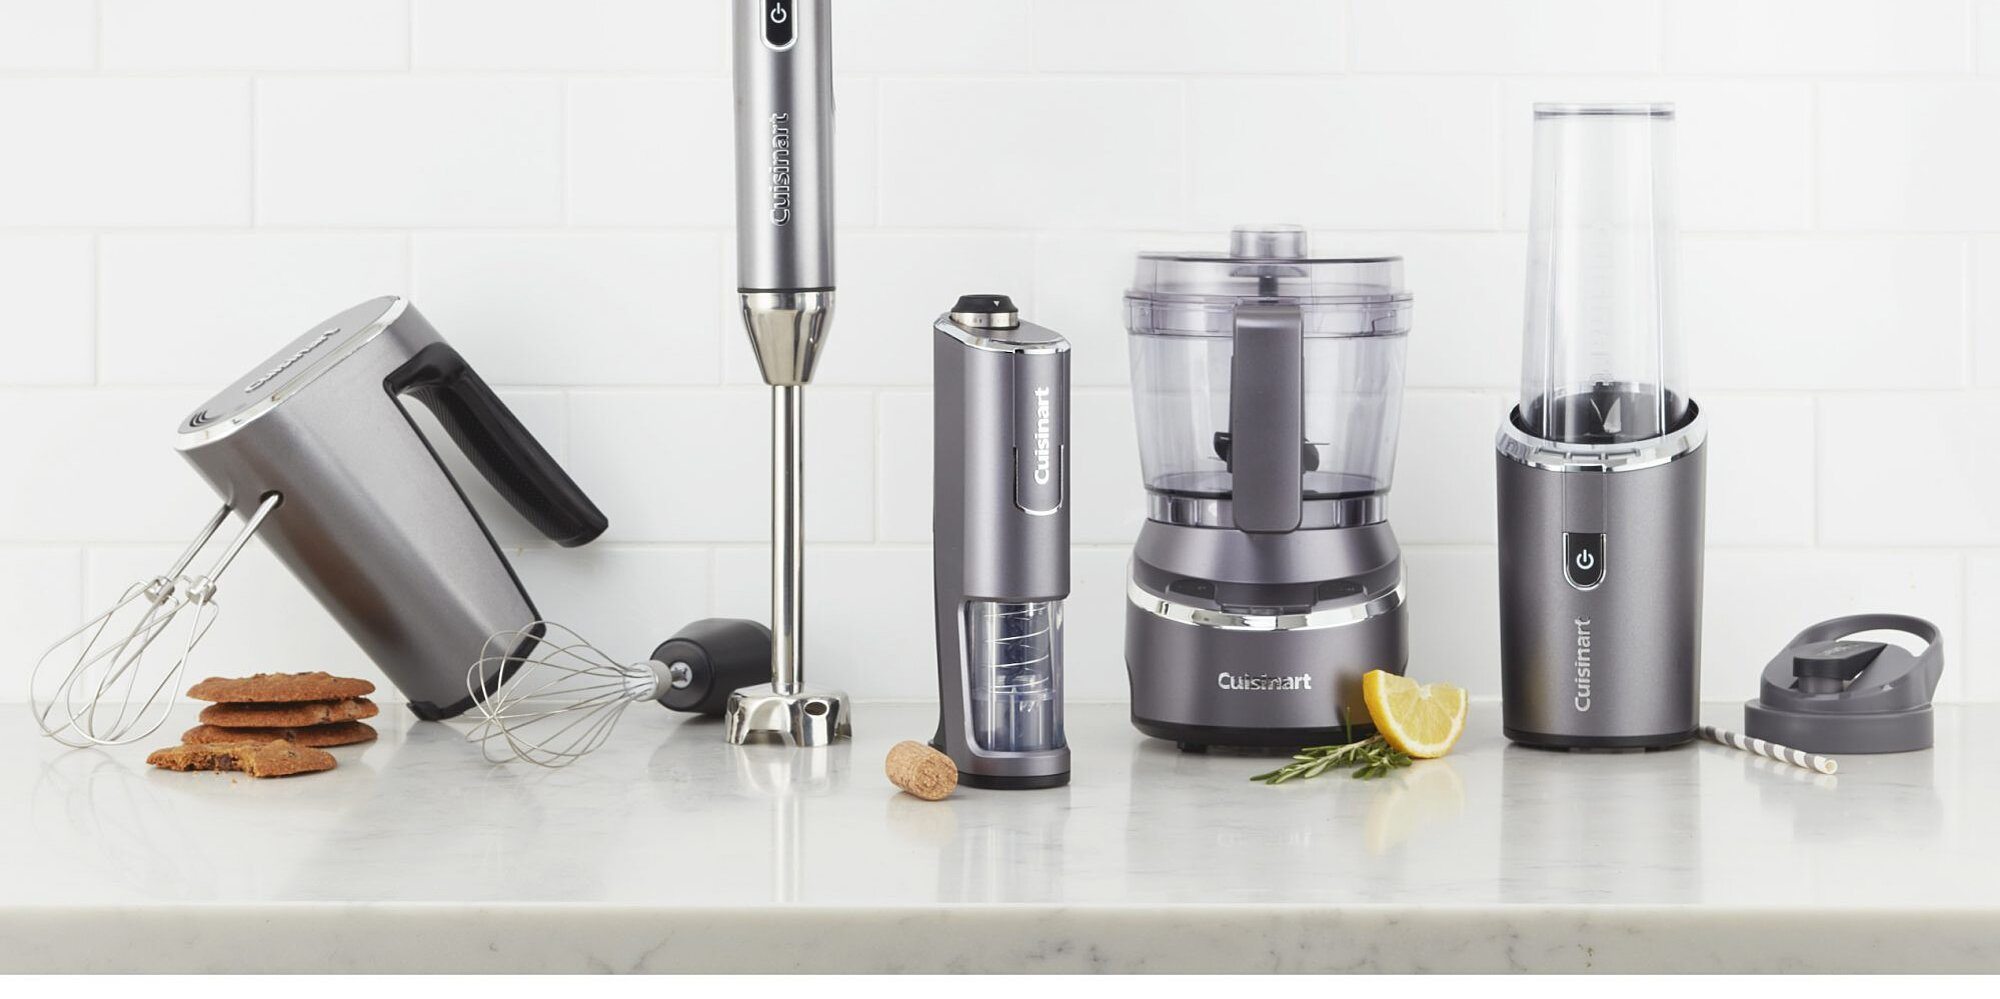 cuisinart launches new cordless appliance line called evolutionx